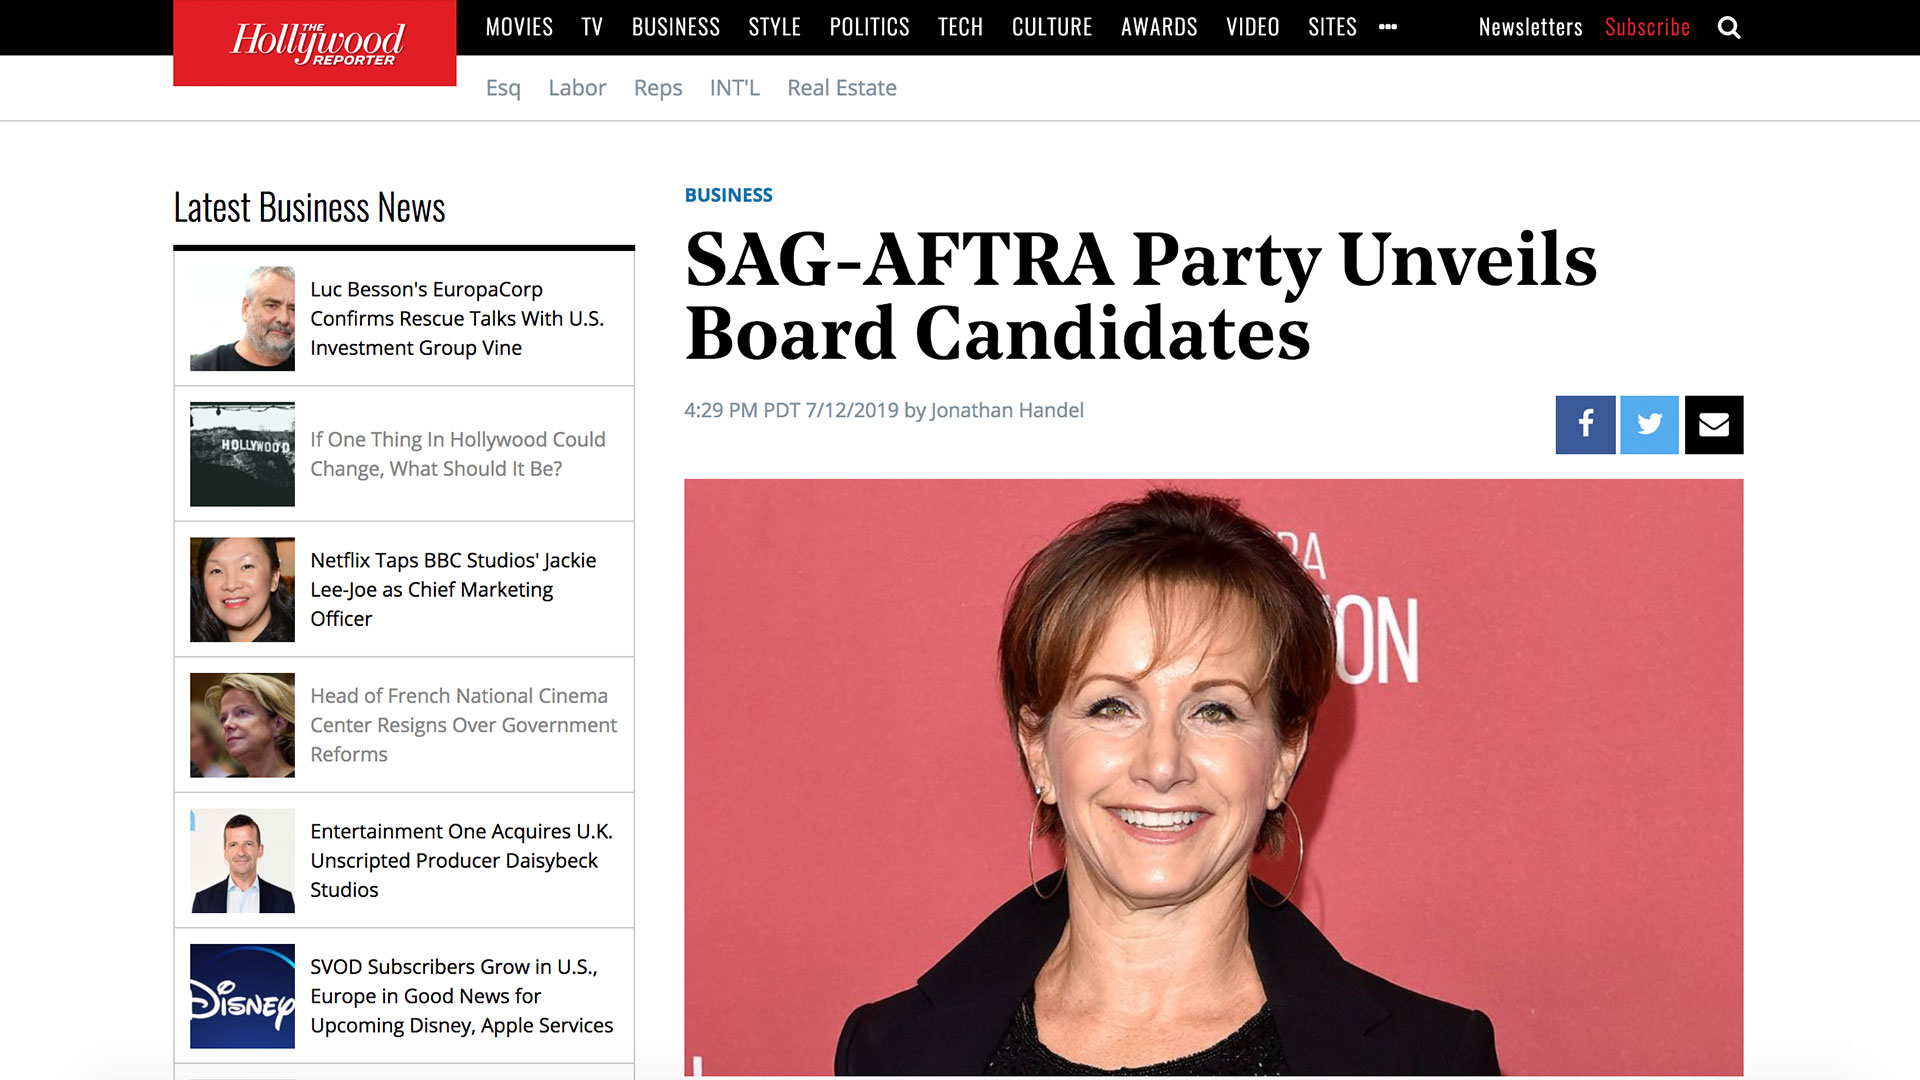 Fairness Rocks News SAG-AFTRA Party Unveils Board Candidates